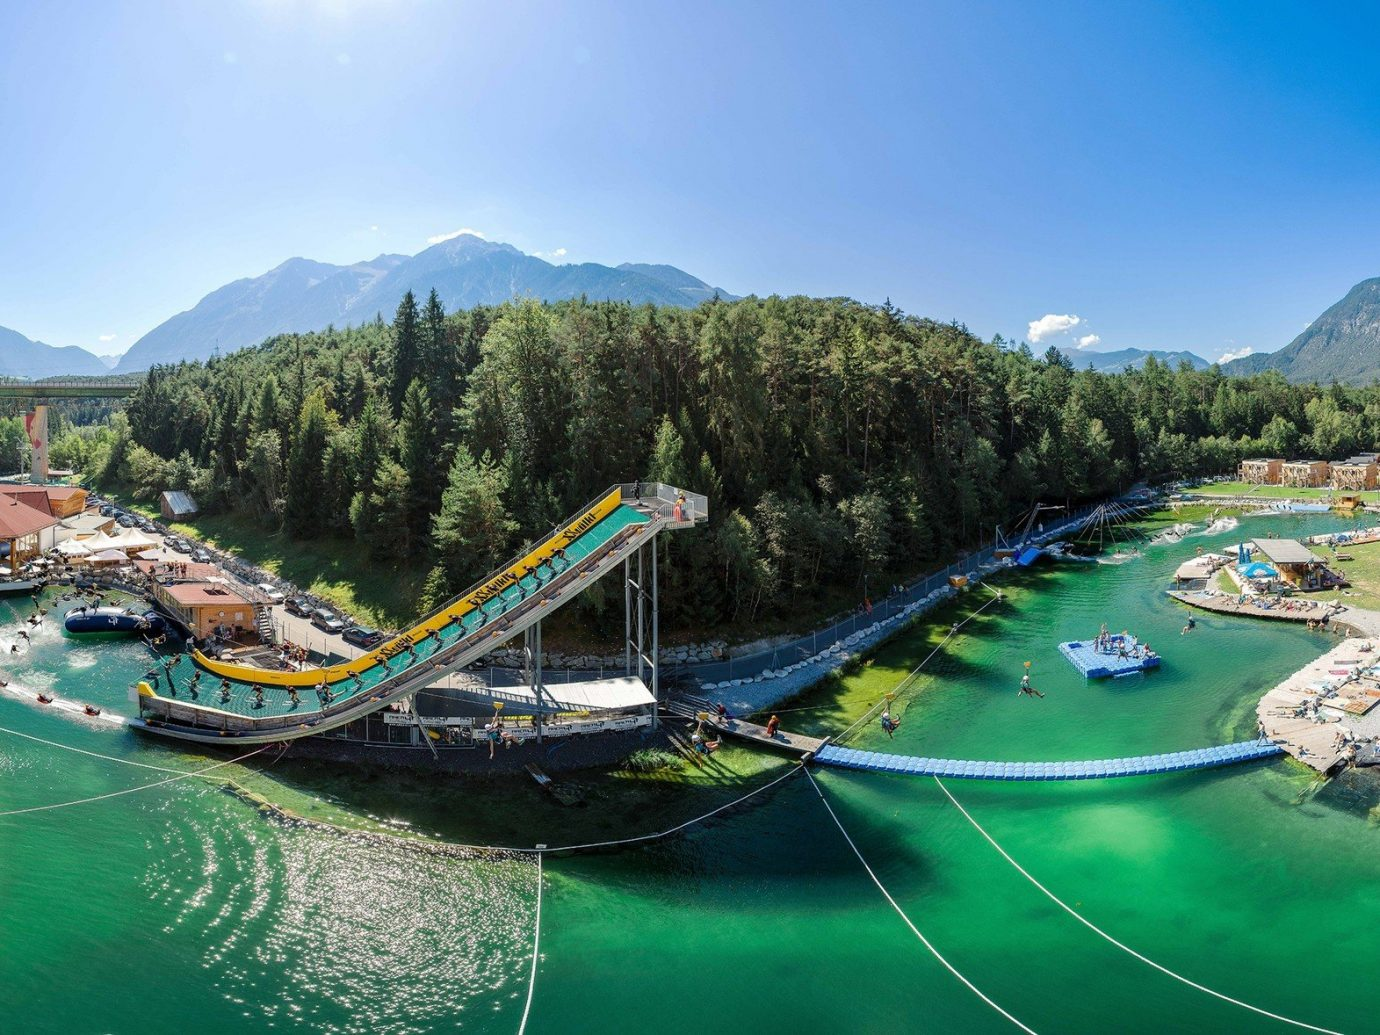 Trip Ideas mountain sky Boat amusement park outdoor leisure park green Nature Water park tourism Resort outdoor recreation recreation mountain range aerial photography amusement ride nonbuilding structure docked colorful